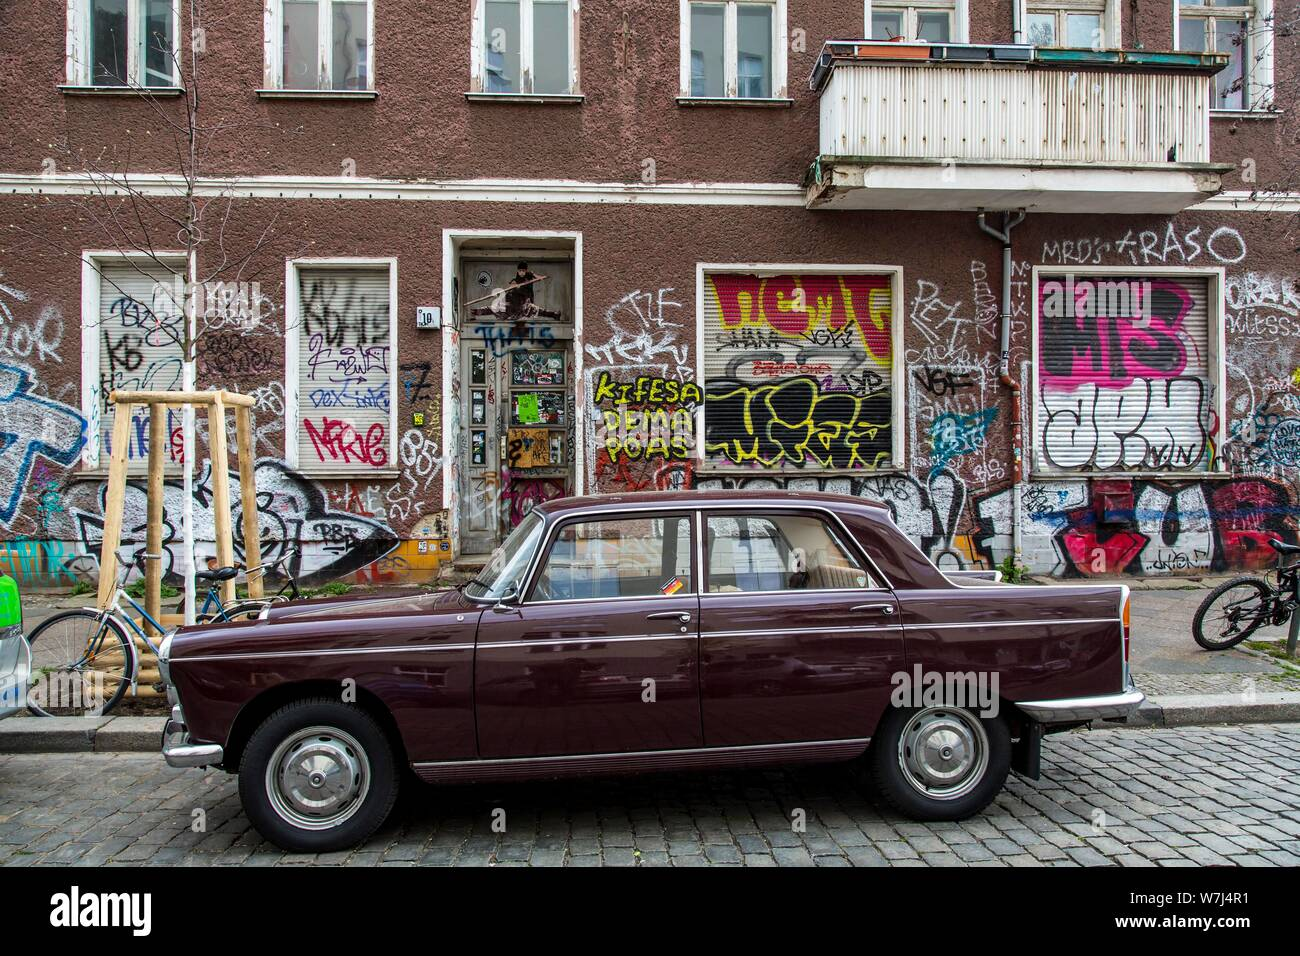 Graffiti, painting, old house at Dirschauer Strasse, in the district Friedrichshain, Berlin, Germany Stock Photo